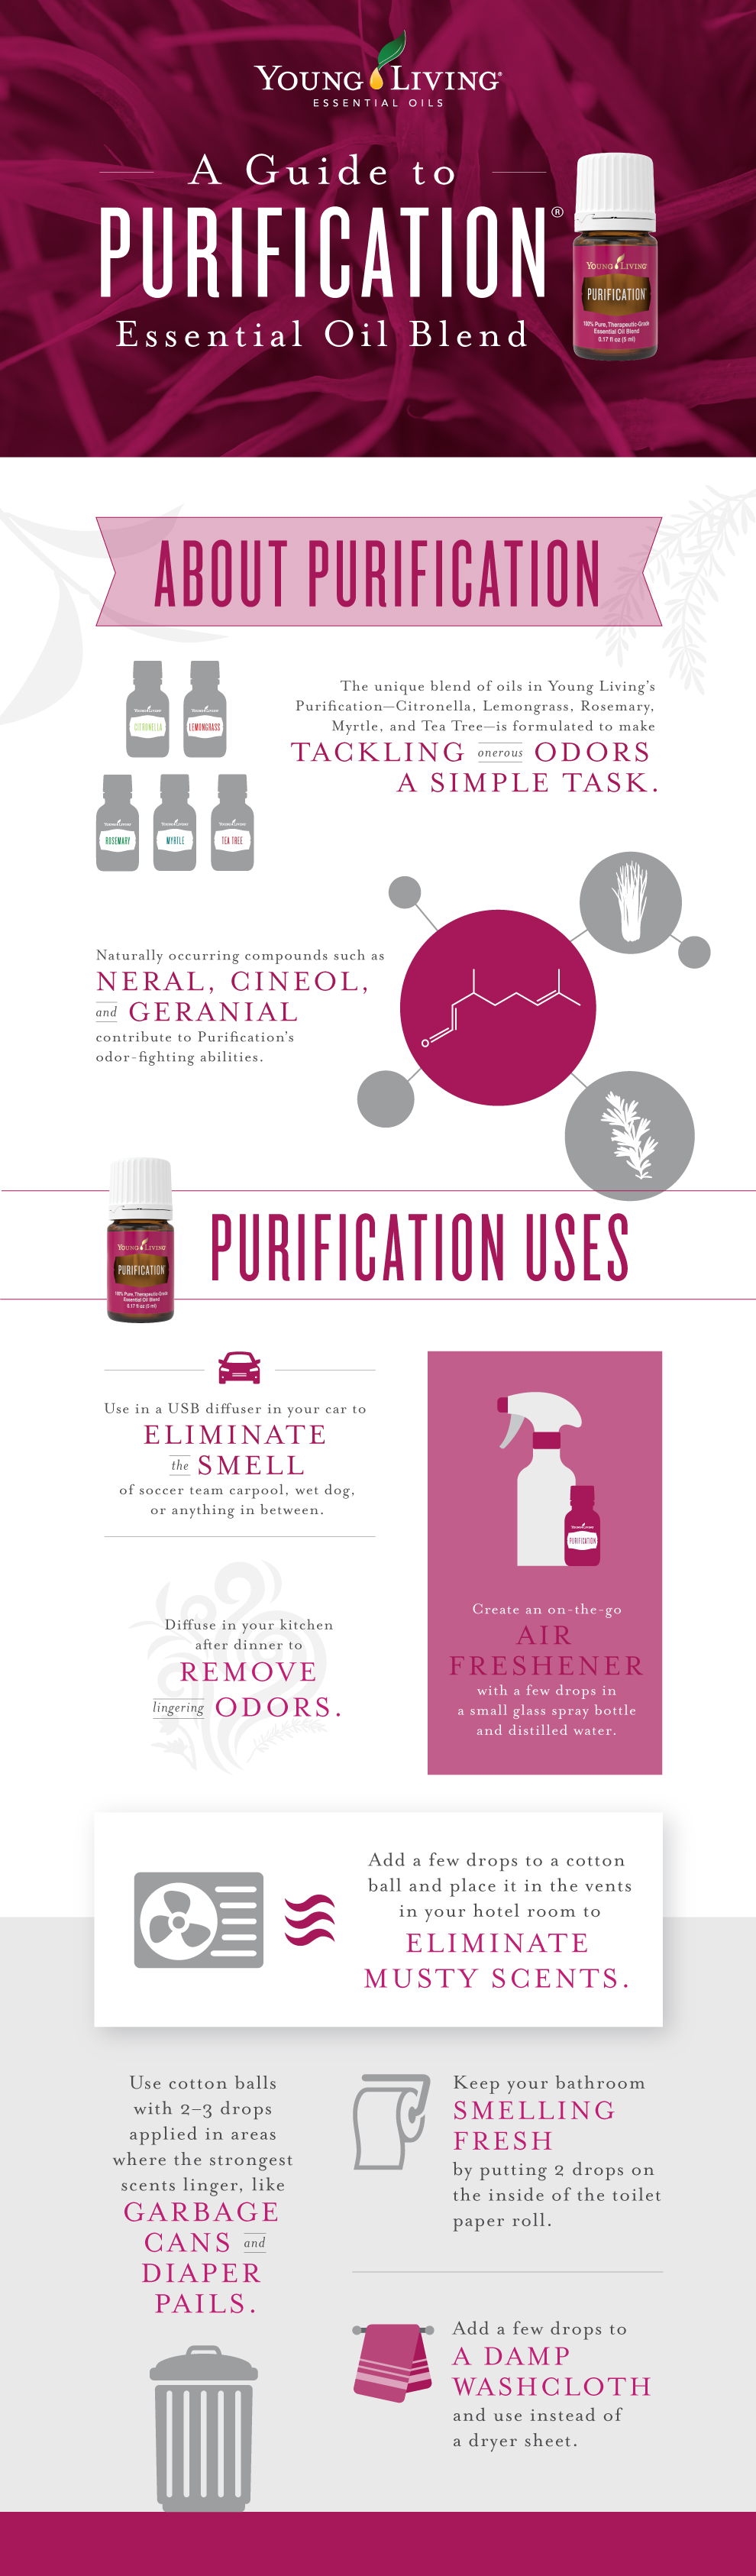 A guide to Purification infographic